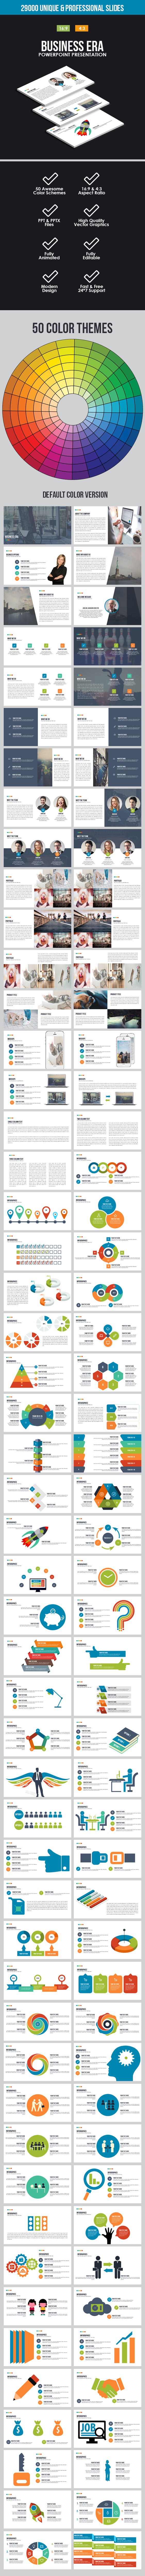 Business Era Powerpoint Template